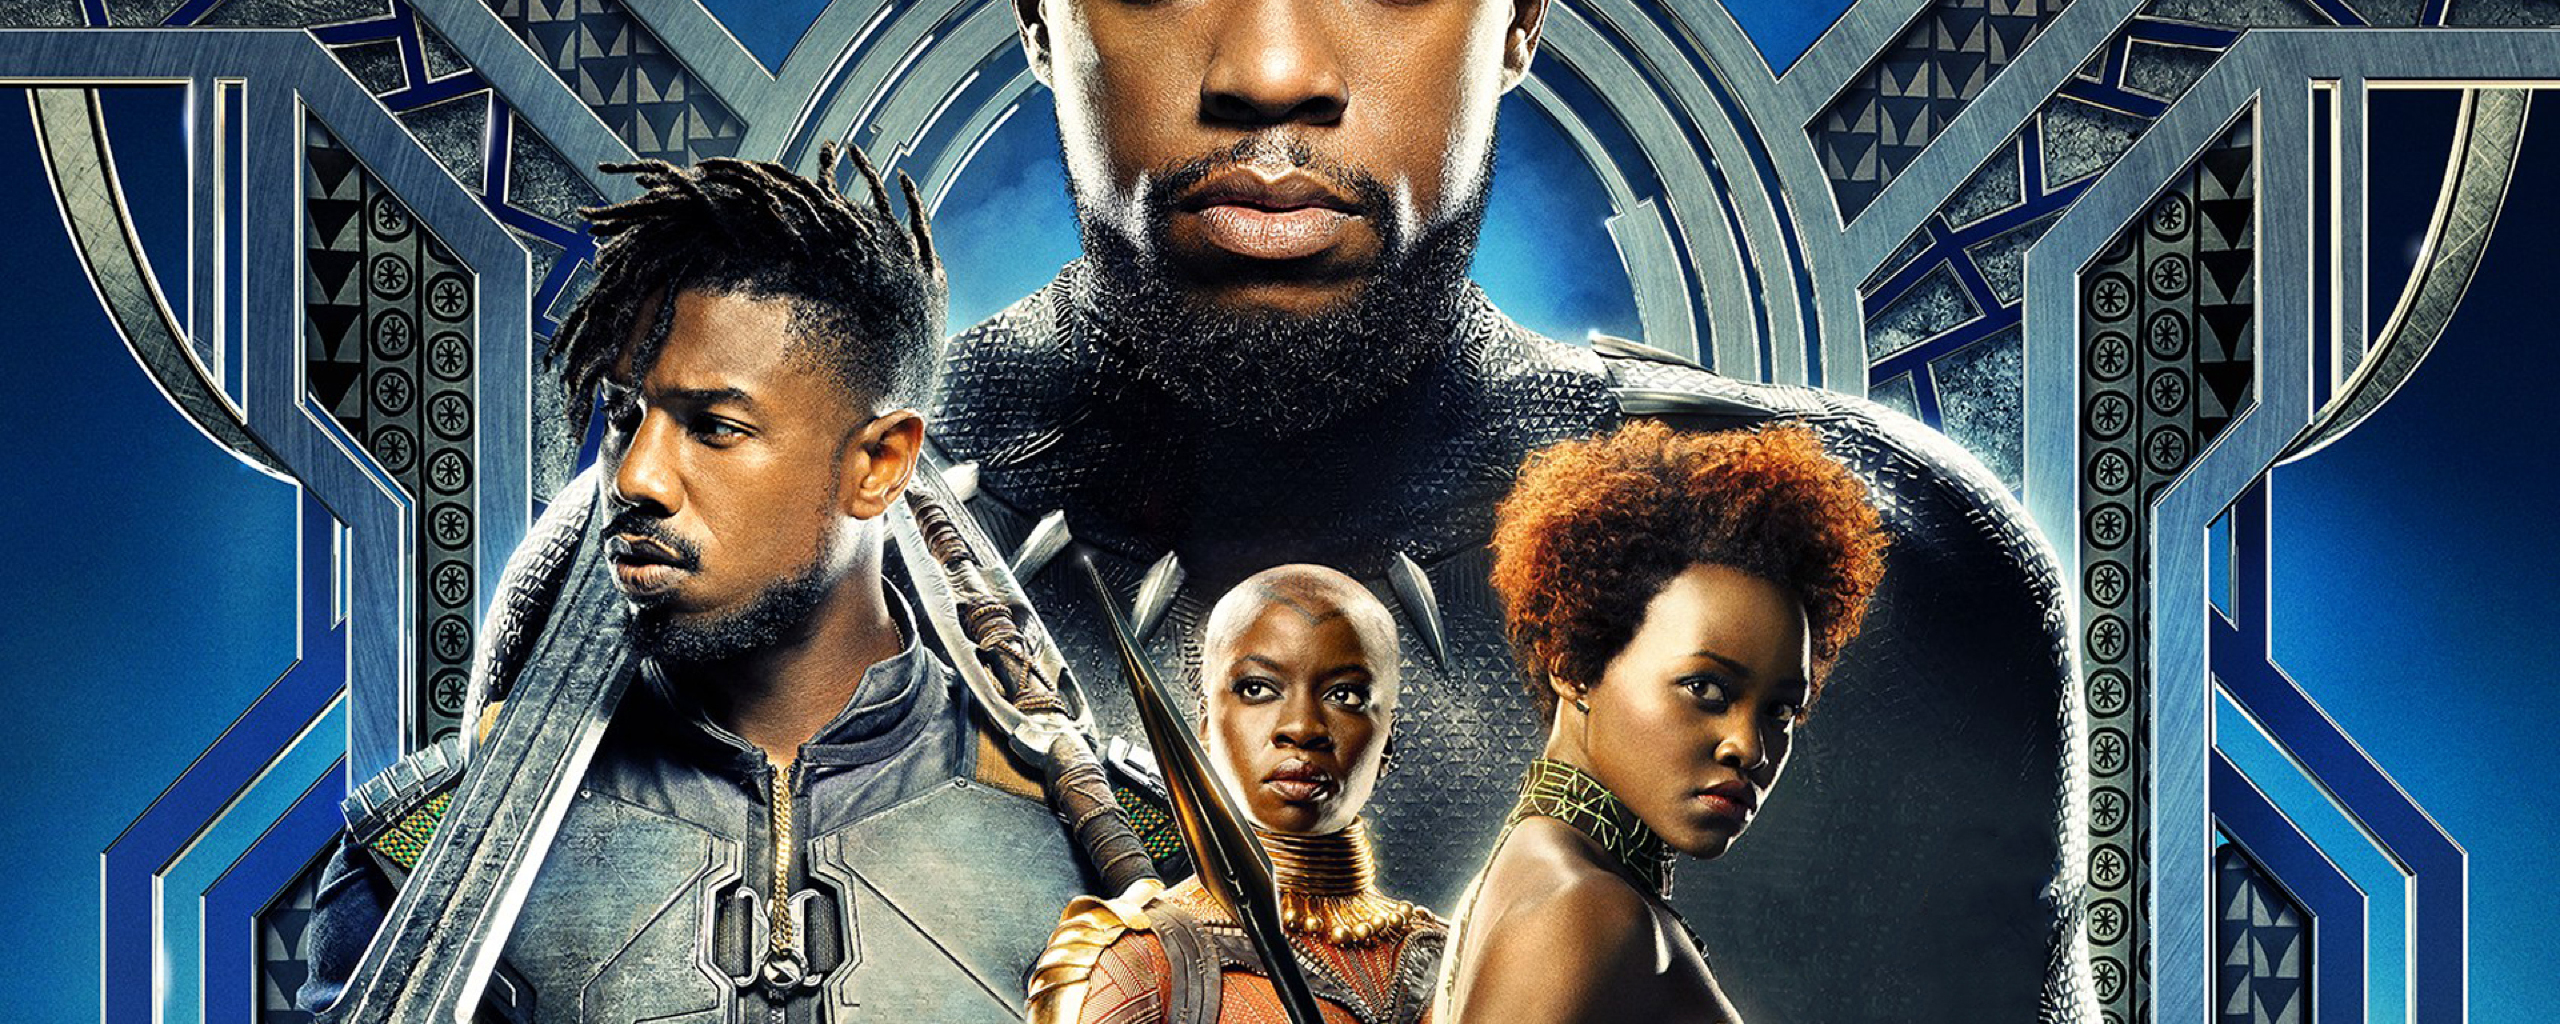 torrent black panther movie 2018